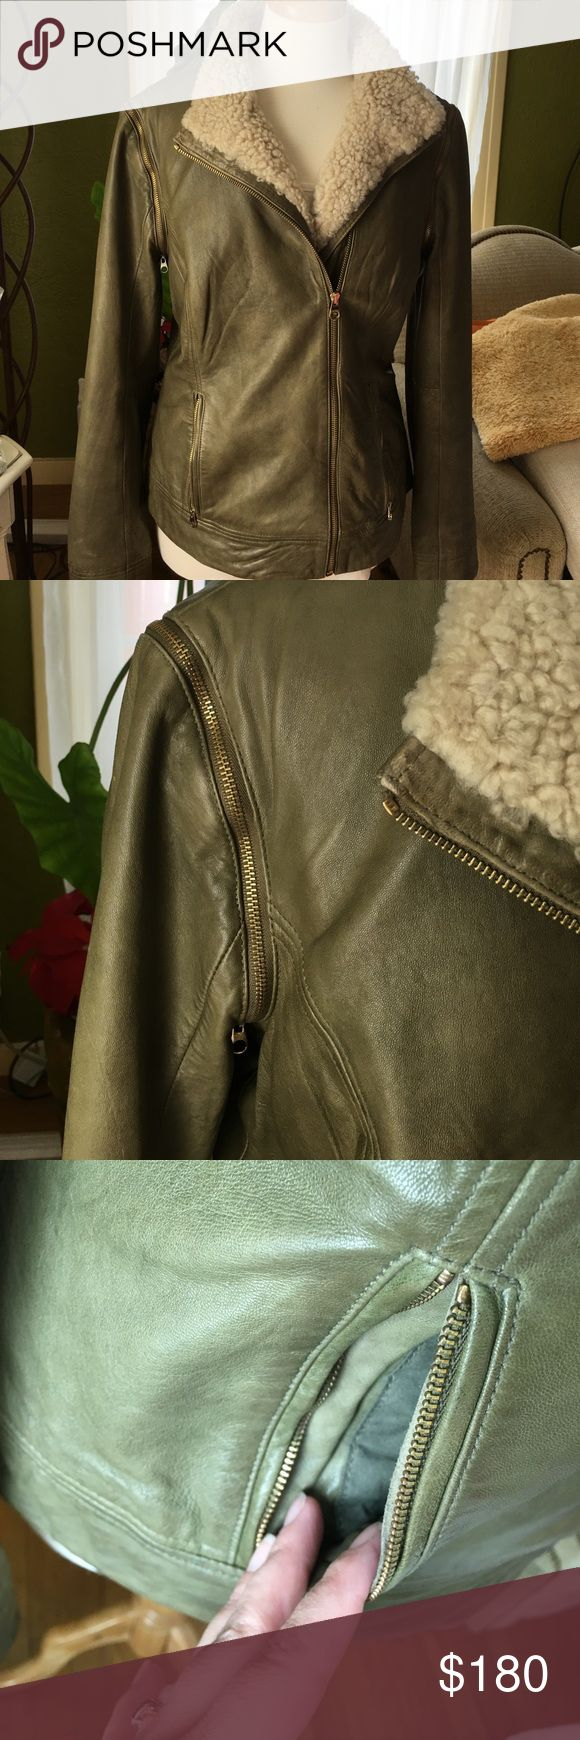 Ted baker -Olive green leather jacket -final price Gorgeous leather jacket - the sleeves un-zip - no rips or holes - material info show in photos- size 4 Ted baker size = size 10 U.S per Ted baker website chart - double please check size Ted Baker Jackets & Coats